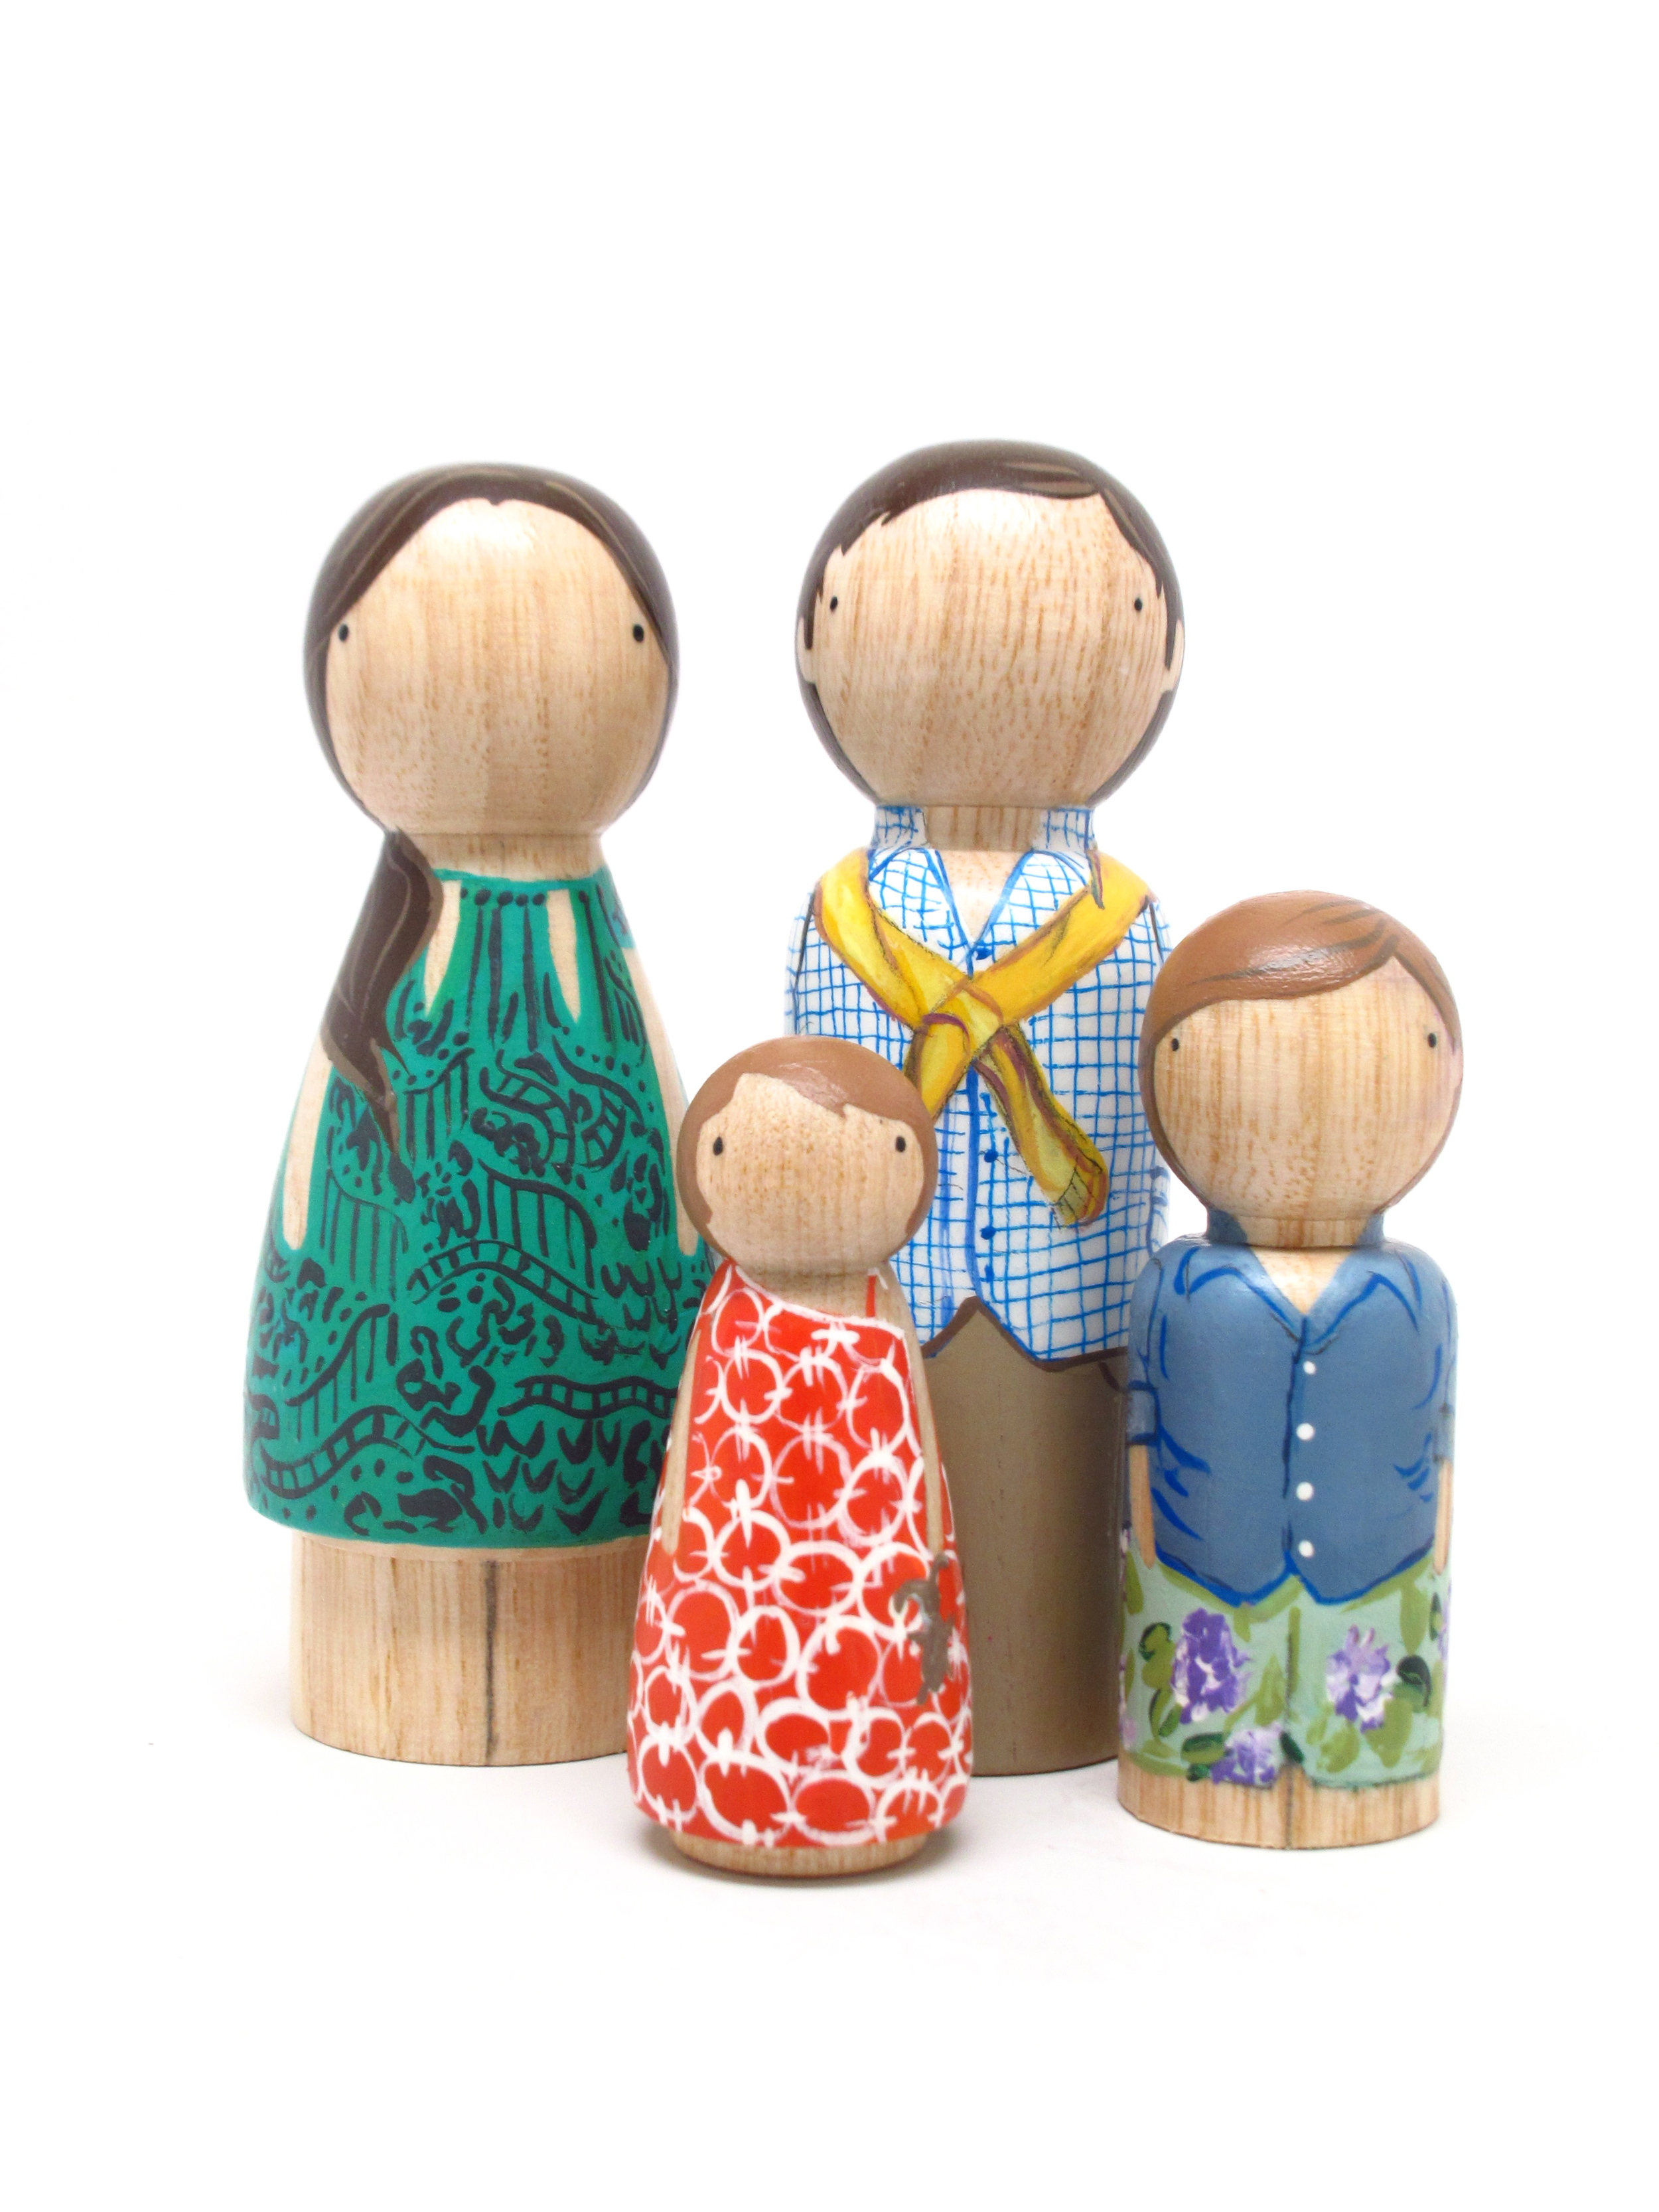 Goose Grease peg dolls